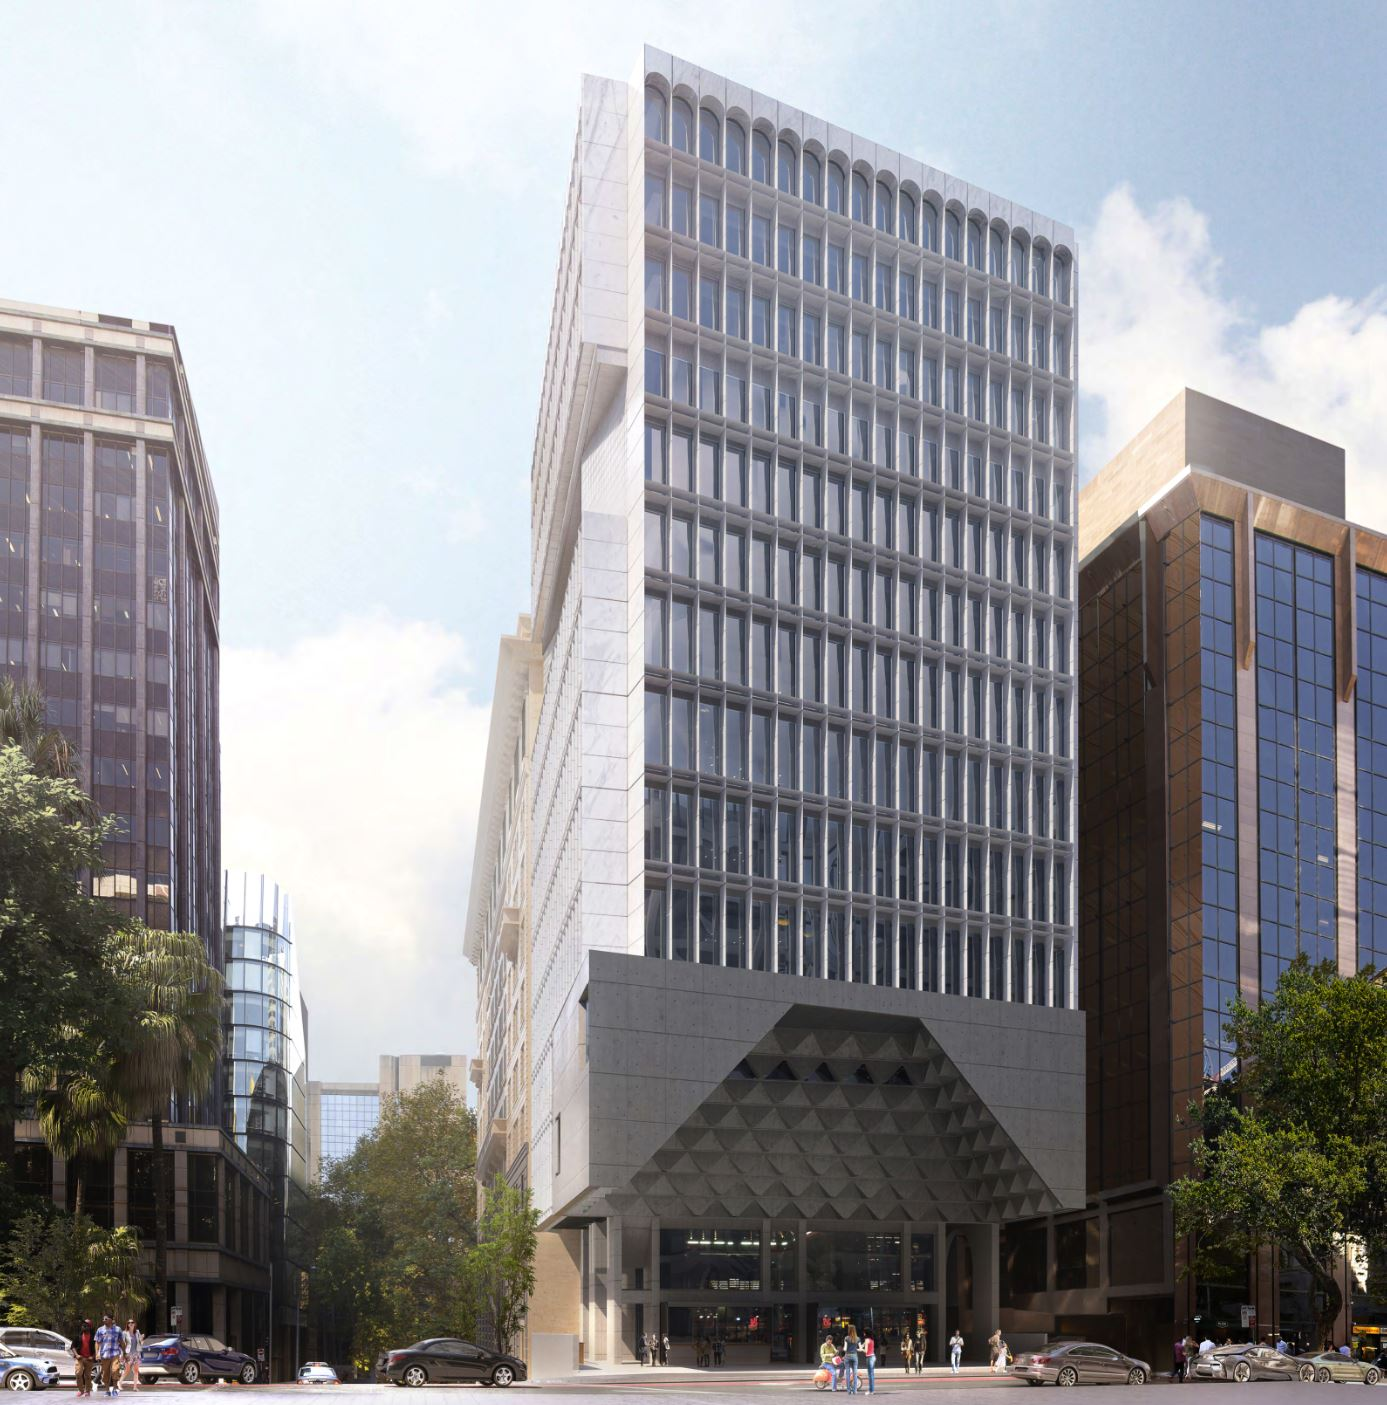 The new building will sit immediately adjacent to the heritage former Bank headquarters, incorporating into the 1920s building at each floor level.